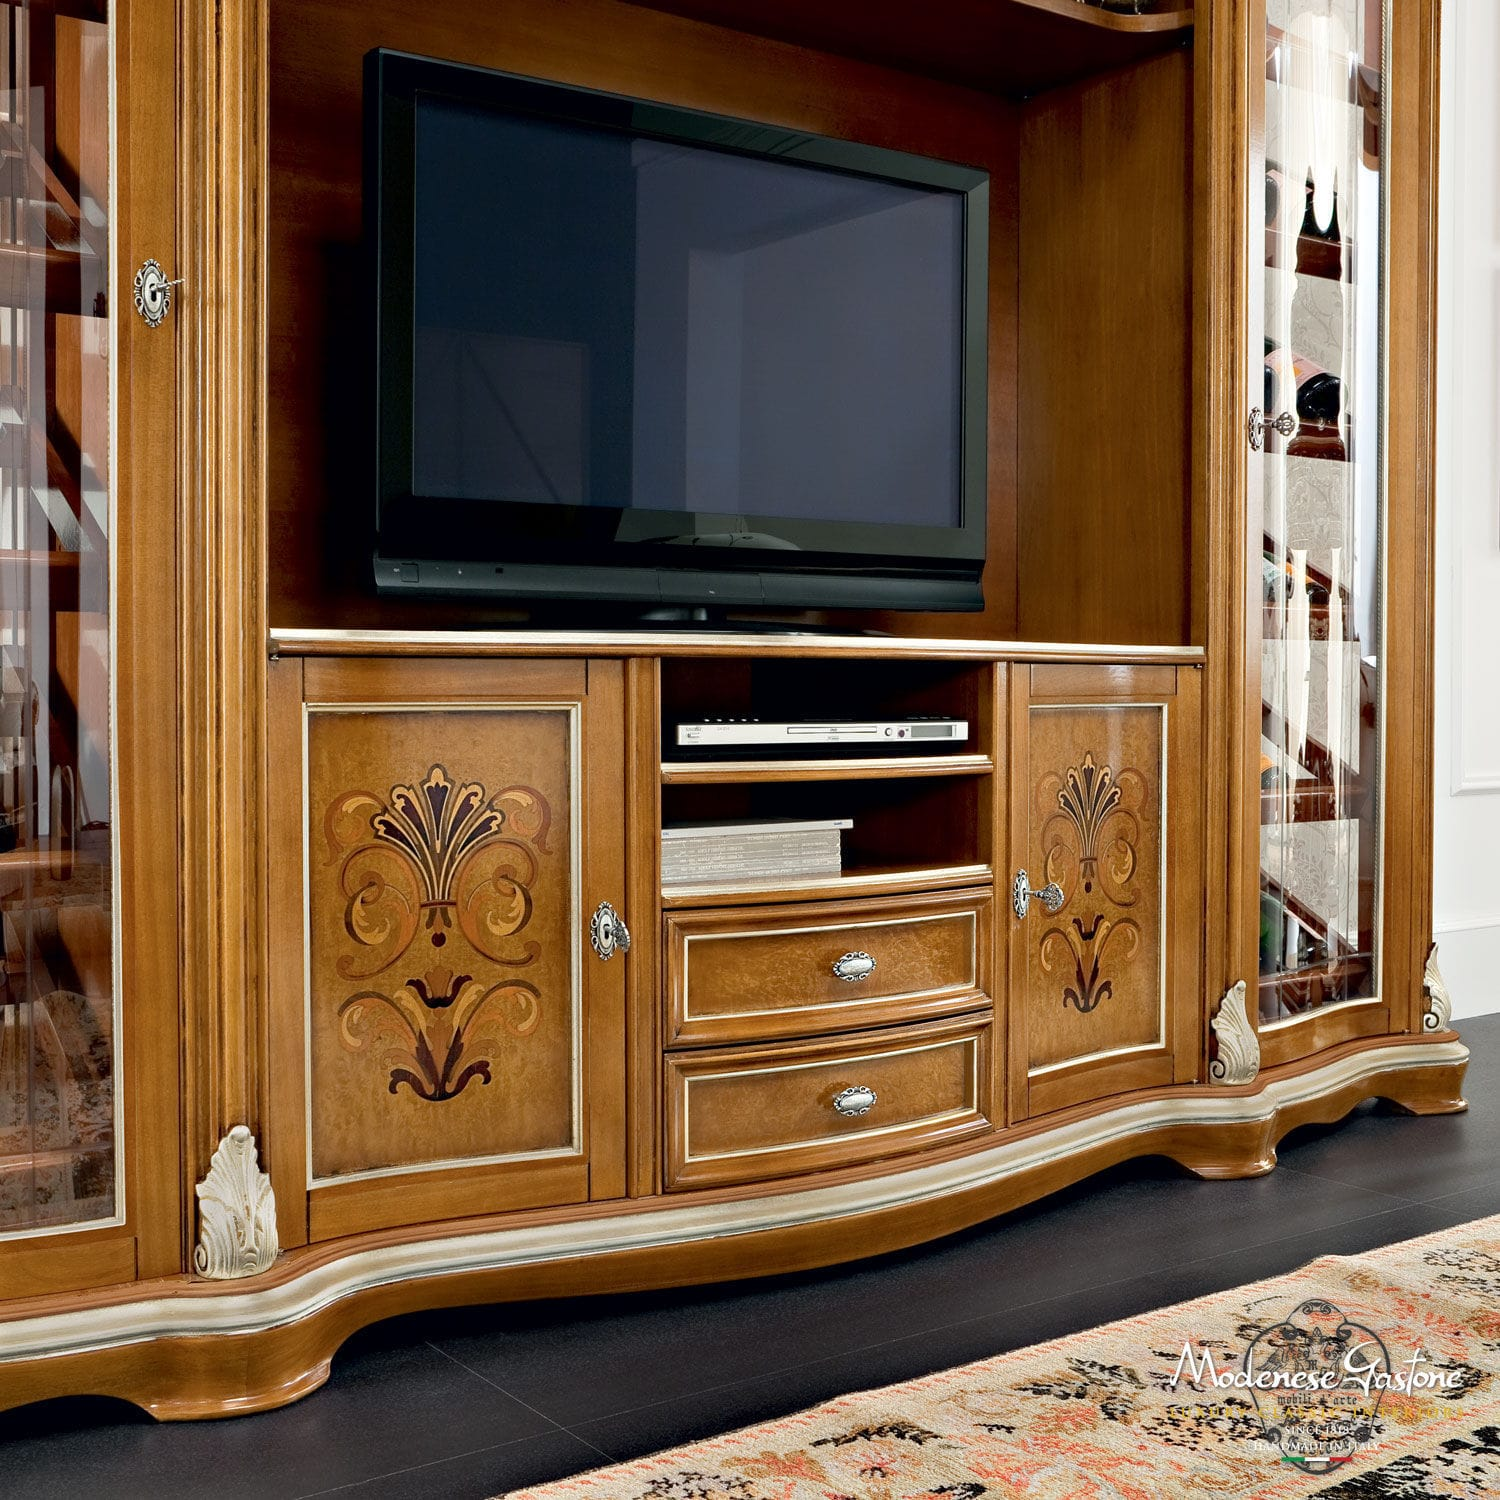 ... Classic TV Cabinet / Solid Wood BELLA VITA Modenese Gastone Luxury  Classic Furniture ...